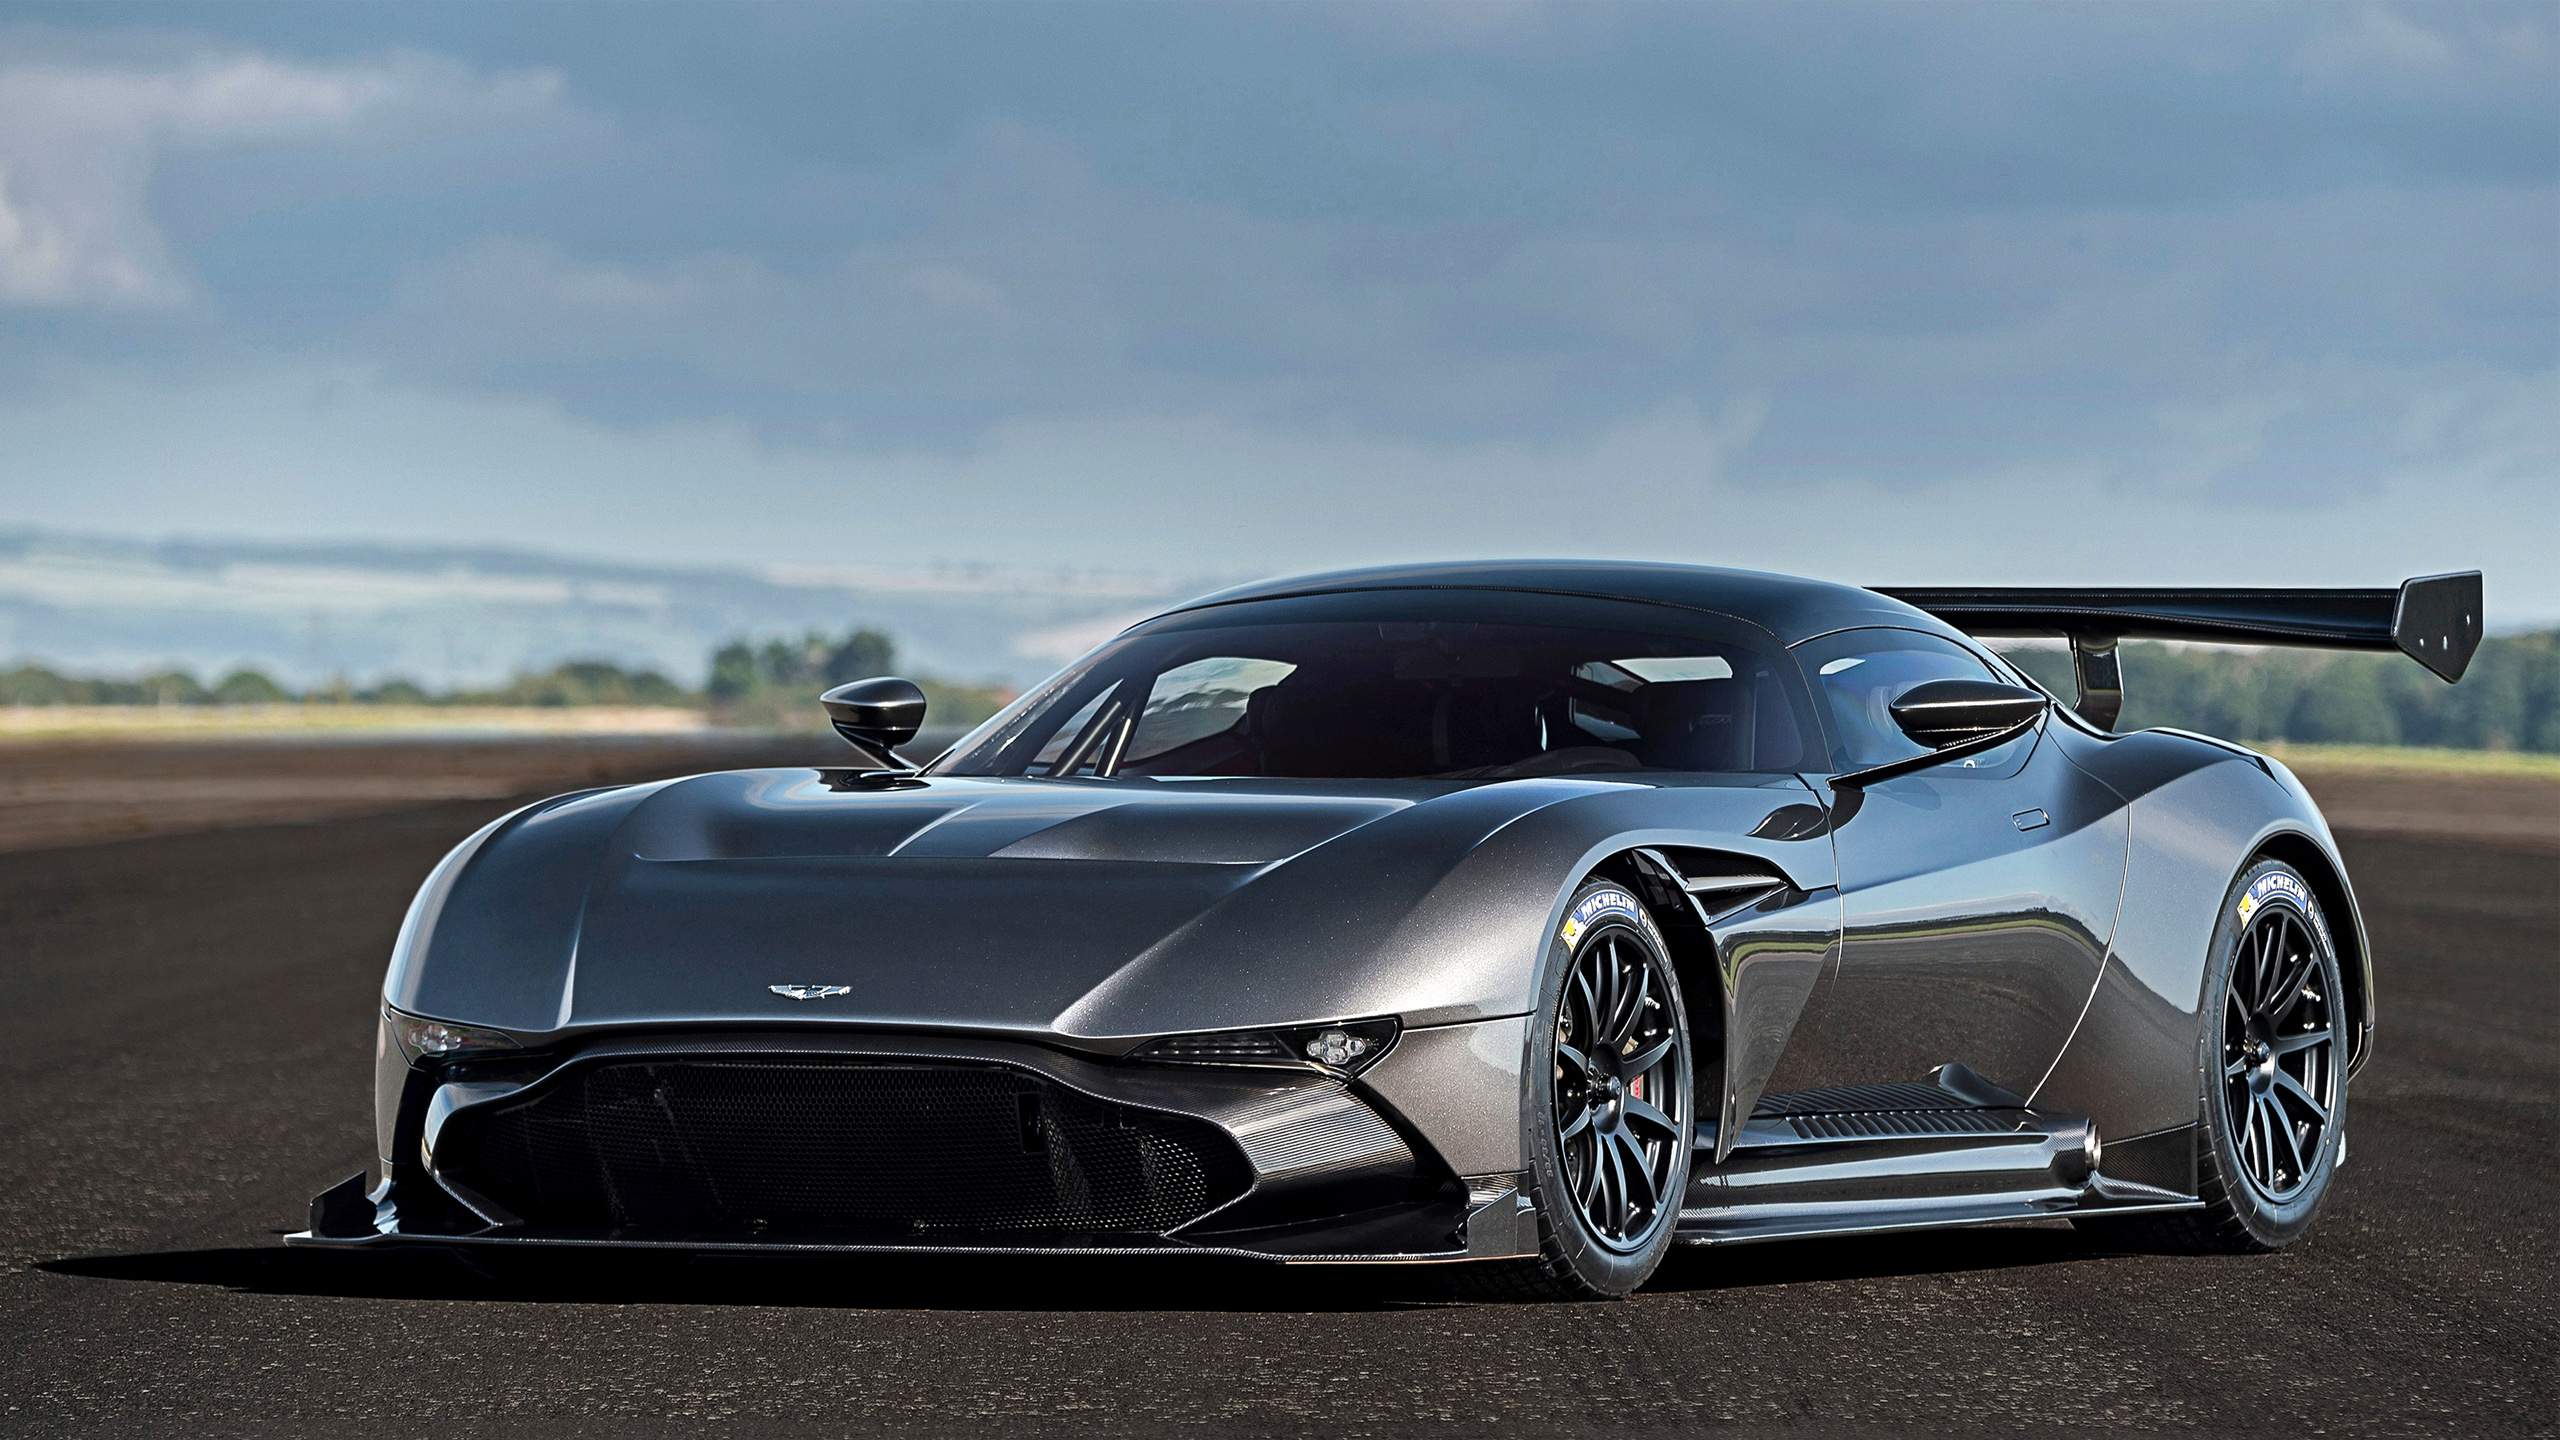 Superior Tags: Aston Martin 2015 Vulcan